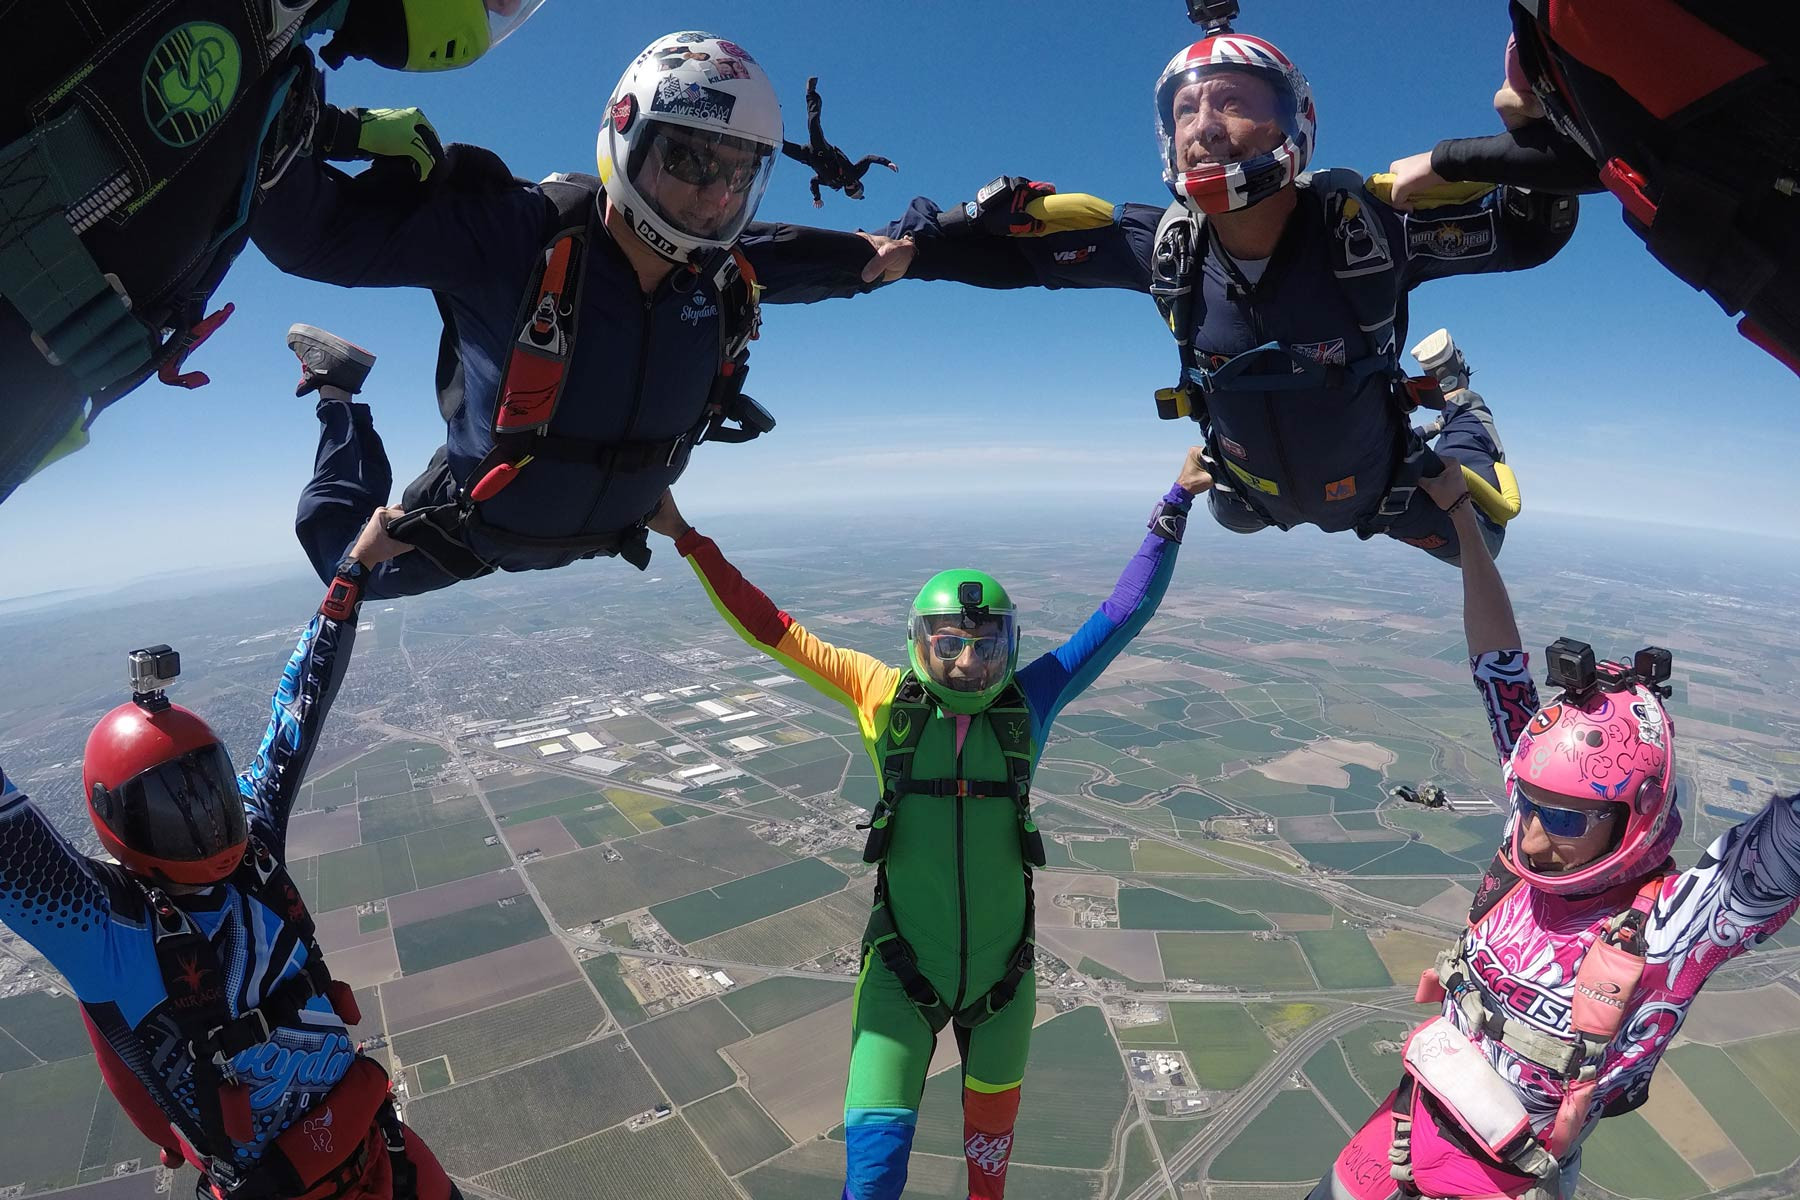 Experienced jumpers in formation at Skydive California.